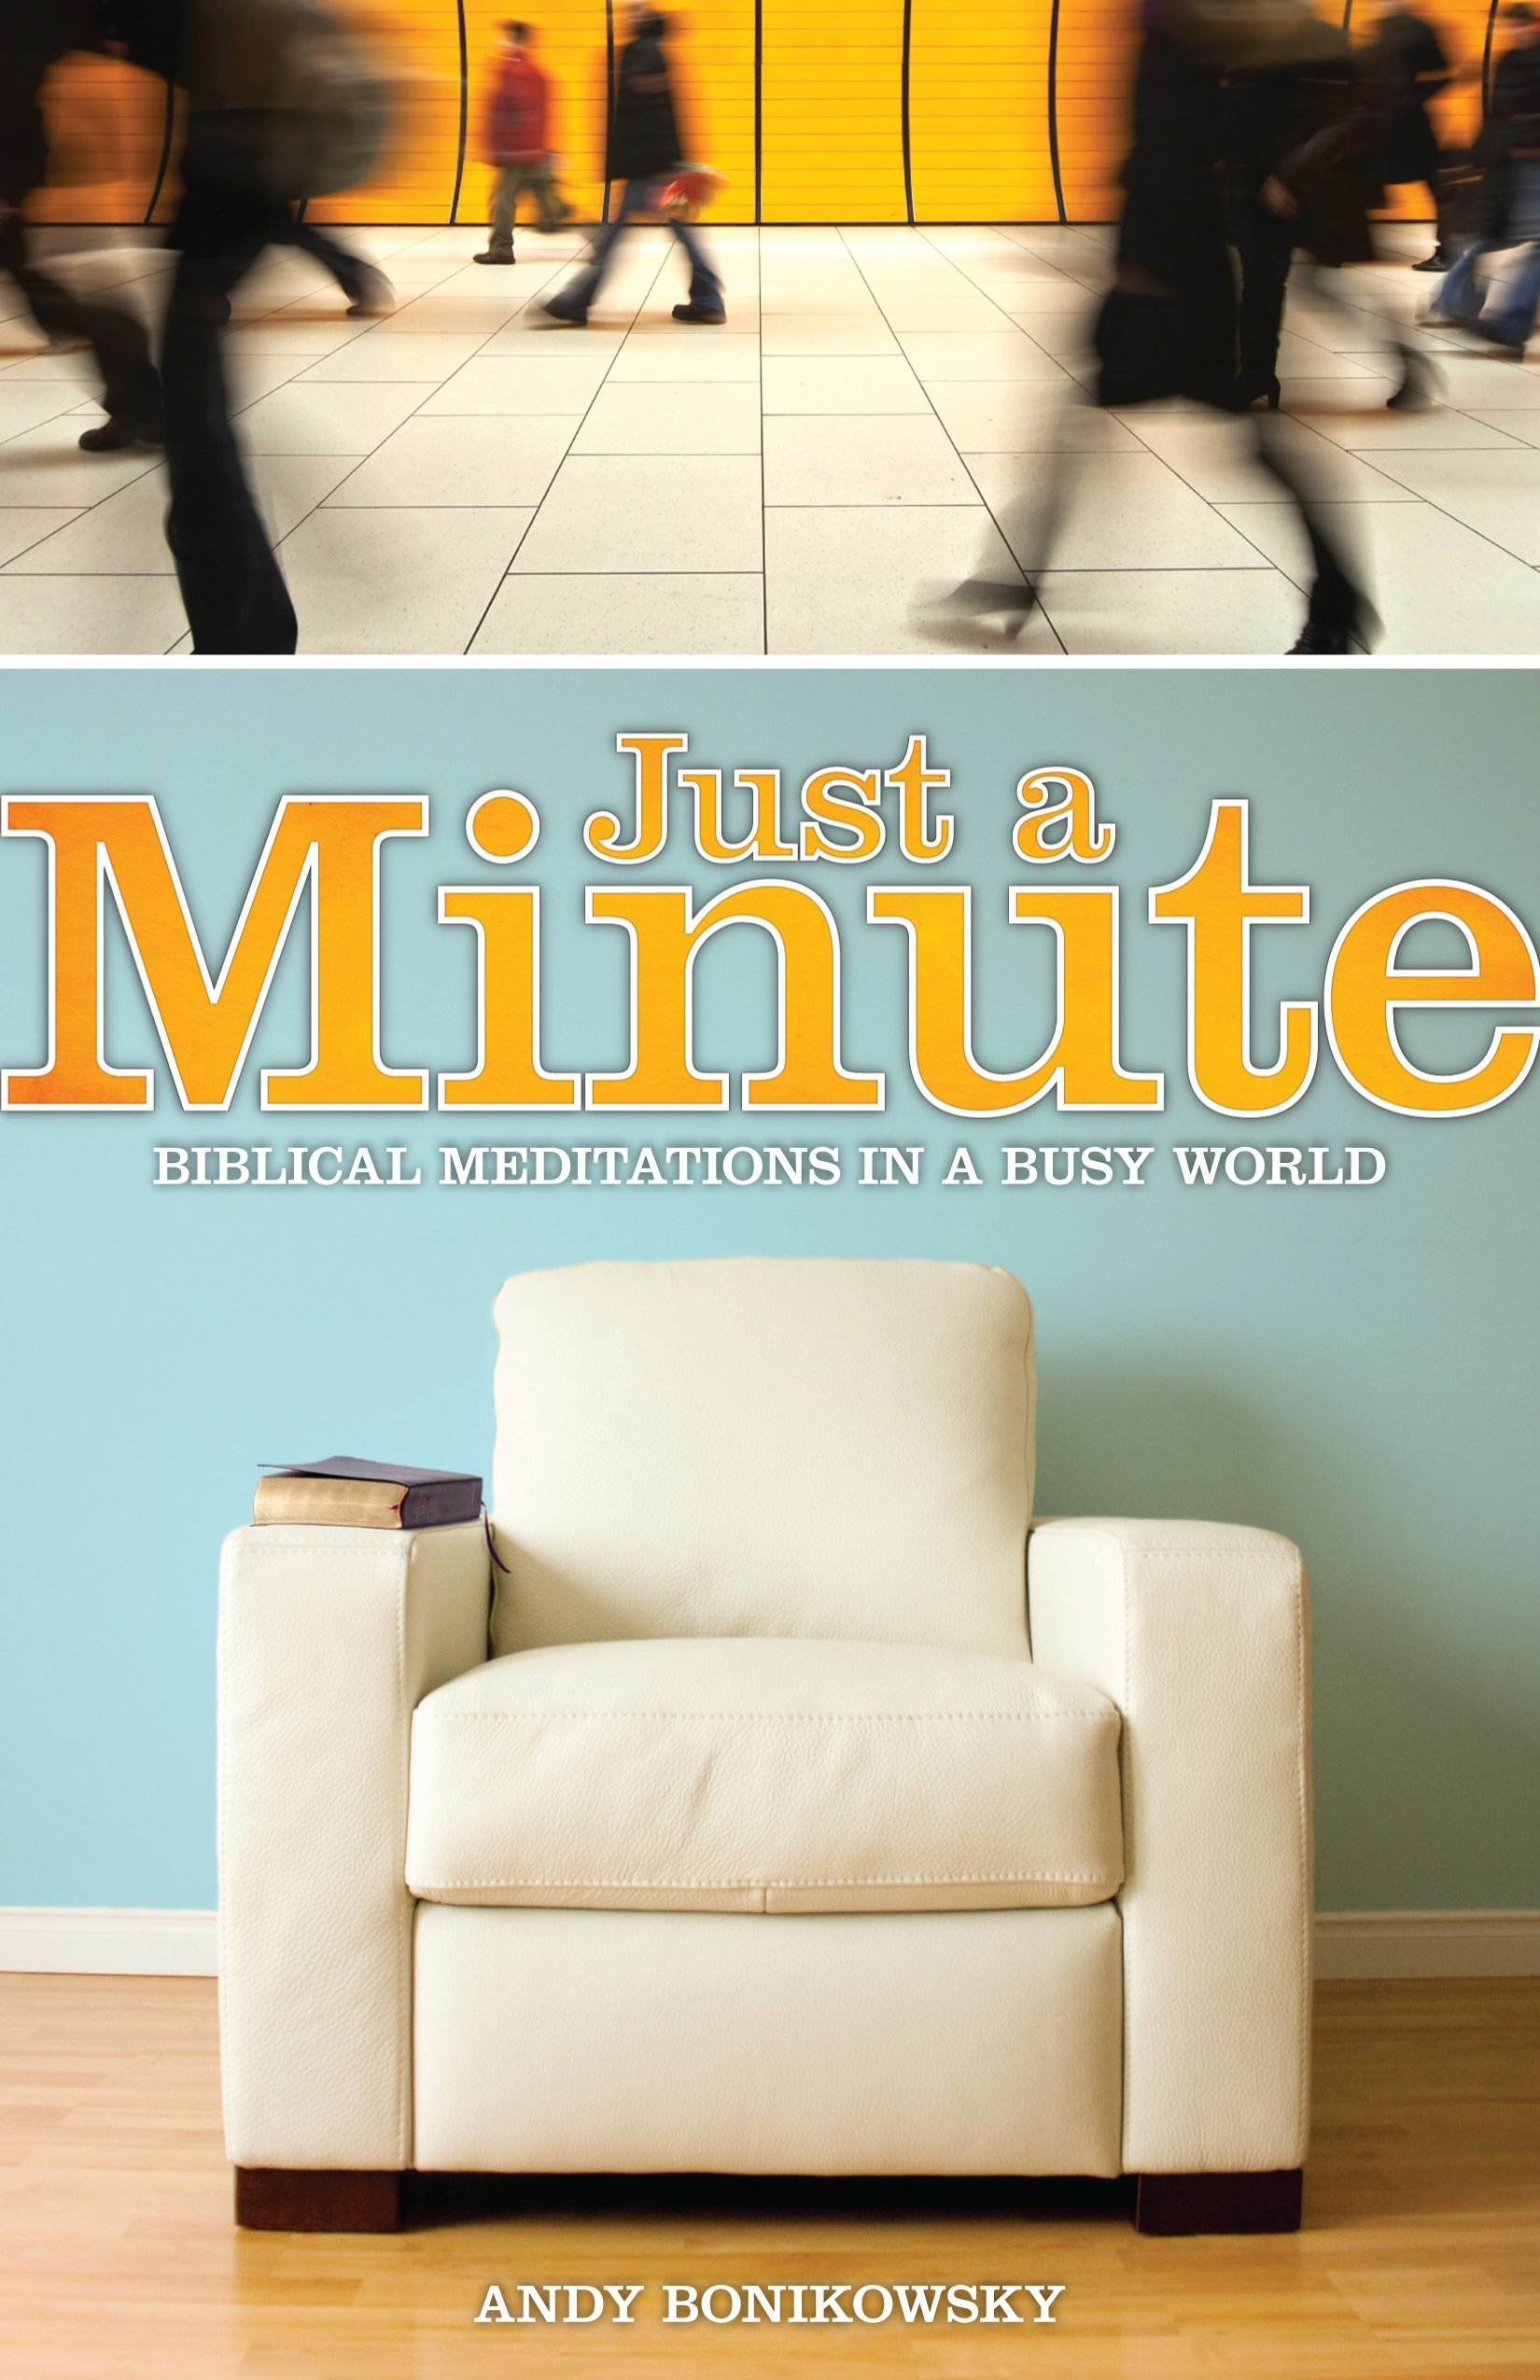 Just a Minute: Andy Bonikowsky: 9781606820650: Amazon.com: Books